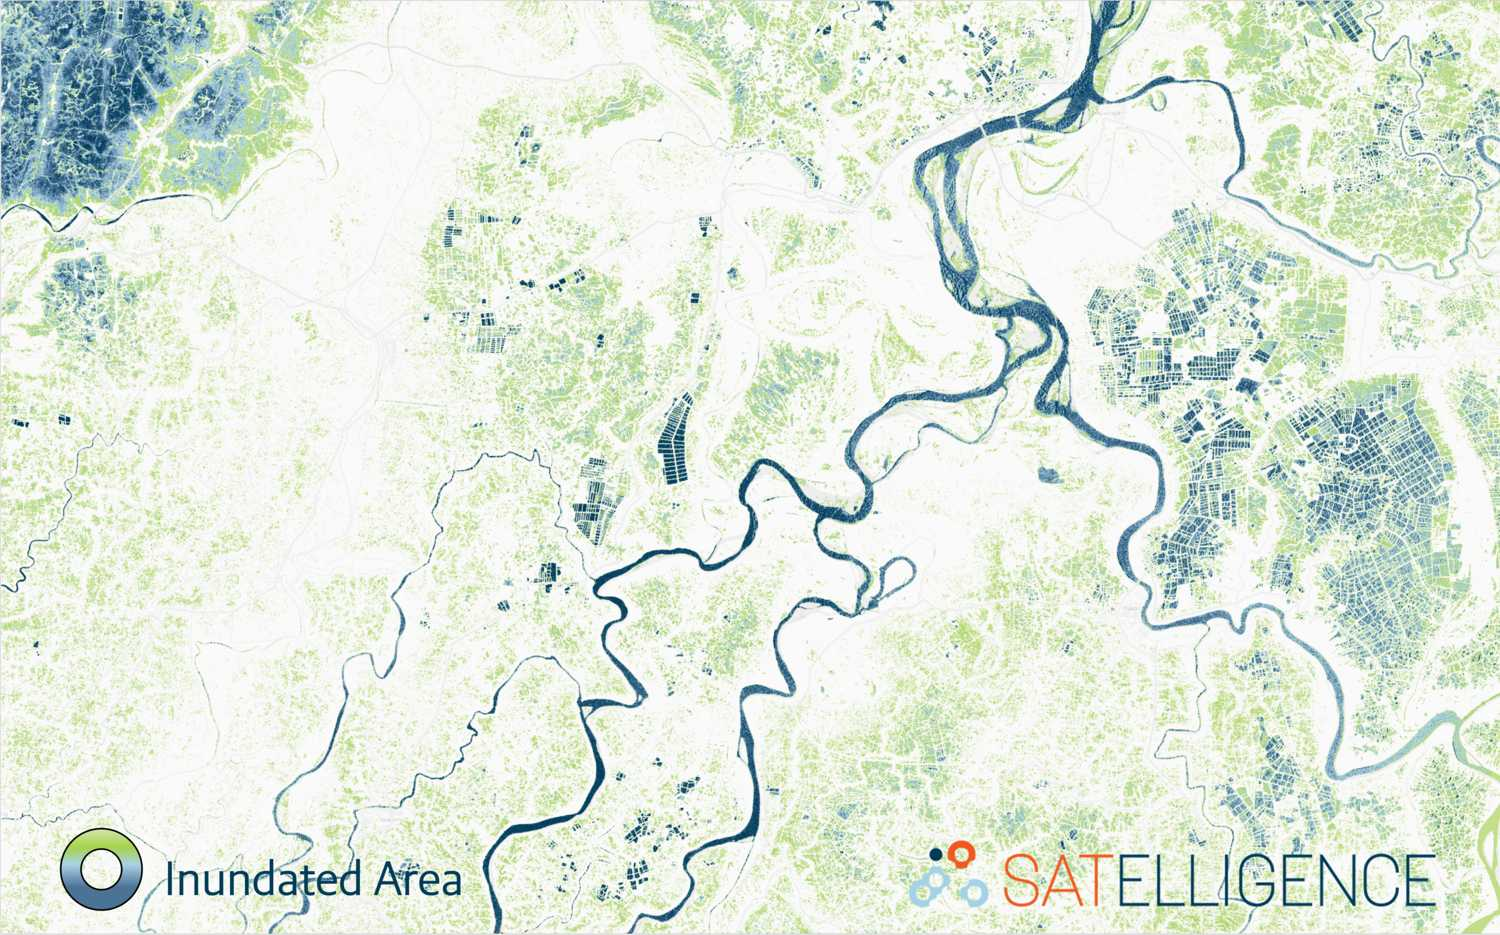 Satelligence has an operational inundation frequency service for large areas all around the world.